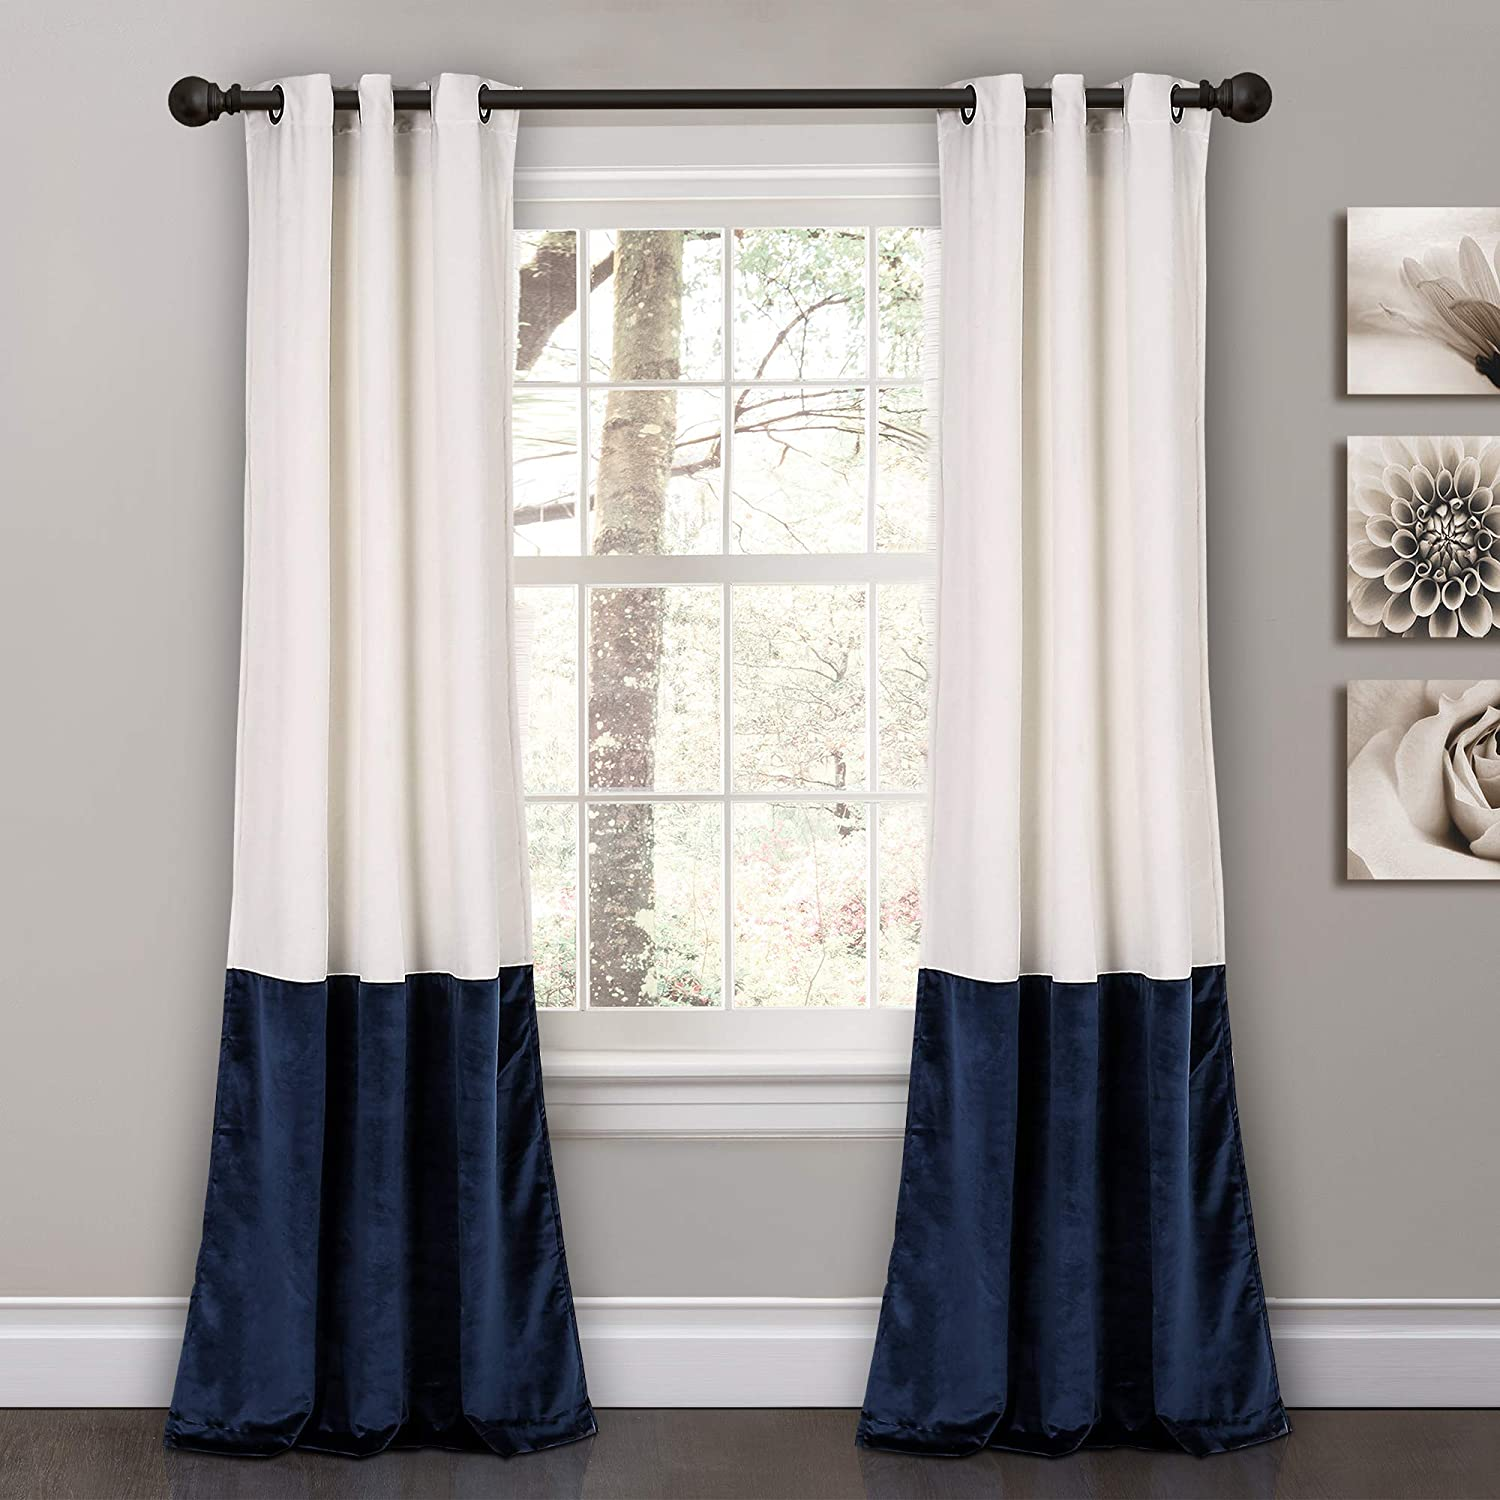 "Lush Decor Prima Velvet Curtains Color Block Room Darkening Window Panel Set for Living, Dining, Bedroom (Pair), 84"" L, Navy"